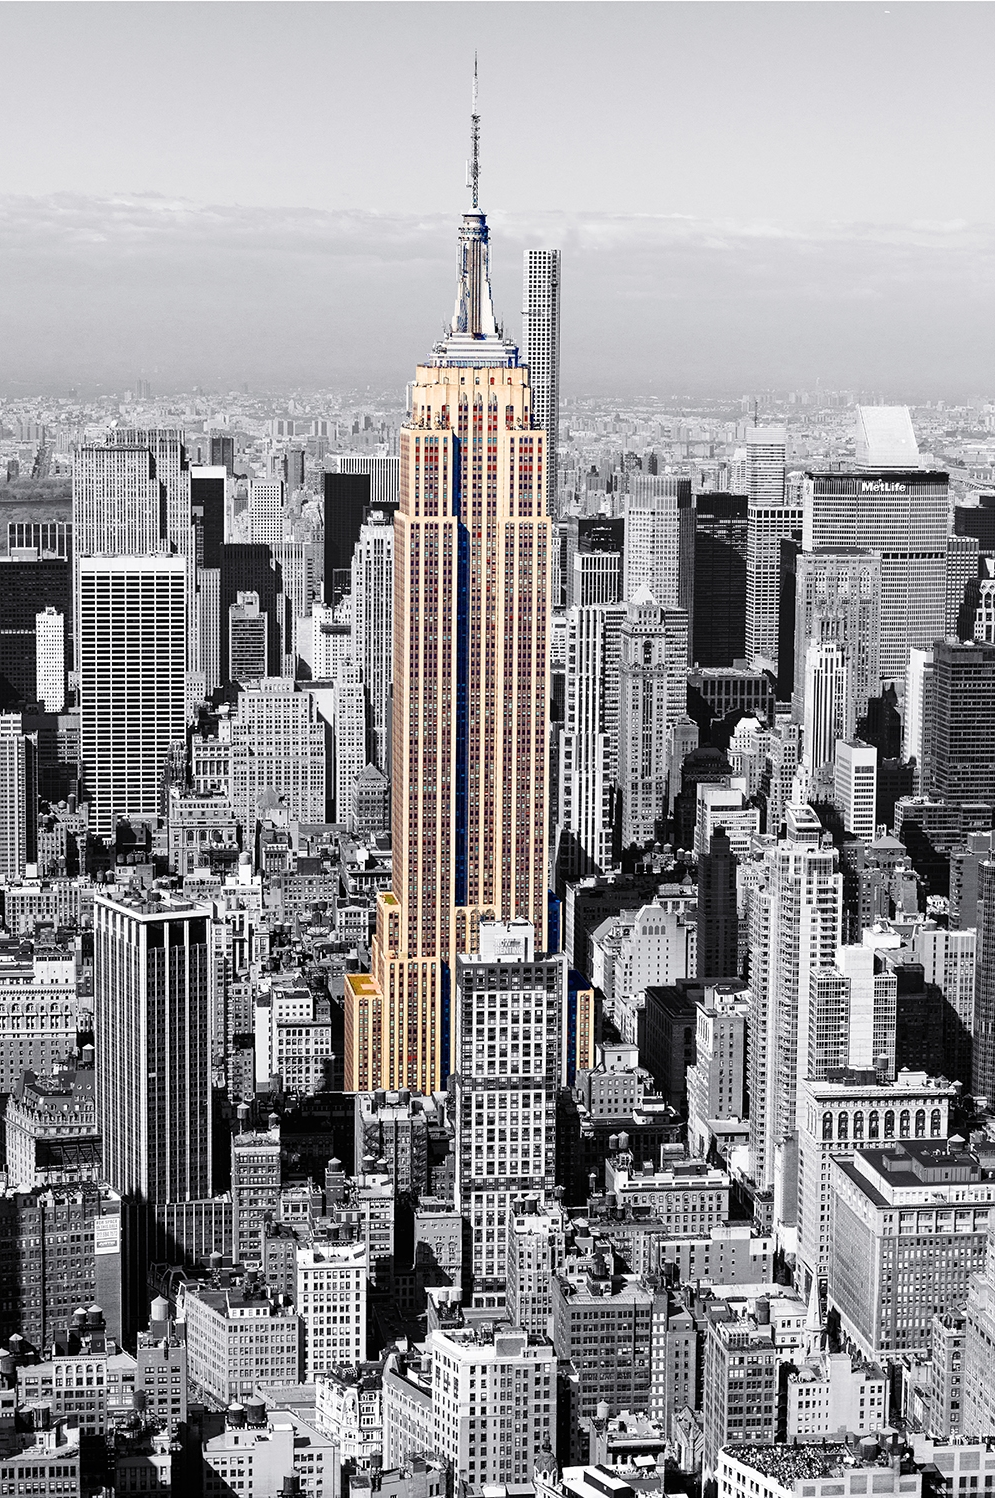 Image Title:  Empire State Building - Aerial   Mat Sizes:  8x10, 11x14, 16x20   Float Mount Sizes:  12x18, 16x24, 20x30, 24x36, 28x42, 32x48, 36x54, 40x60